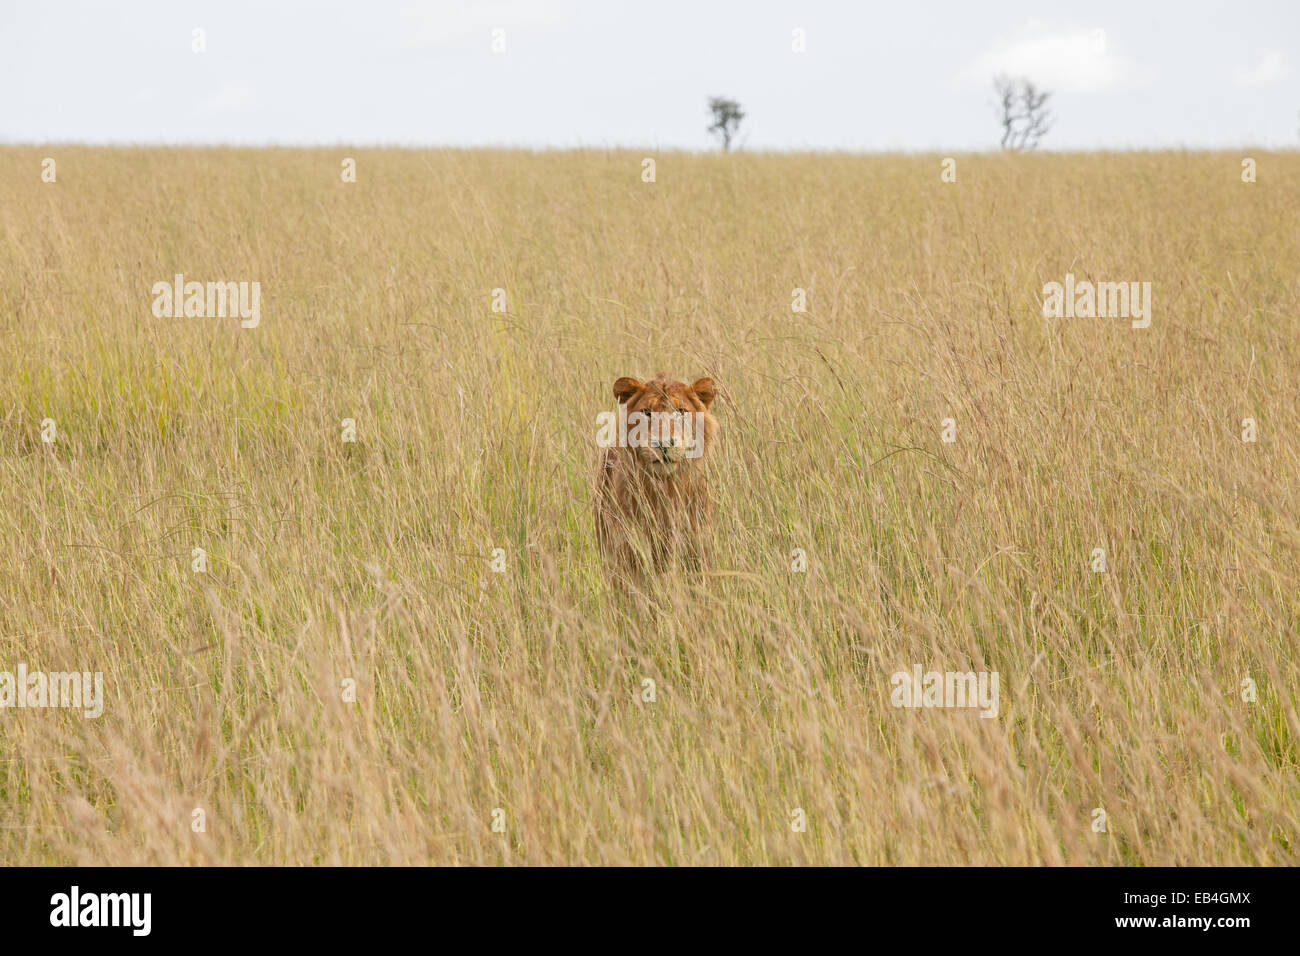 A female lion stands in tall grass, an effective camouflage. - Stock Image